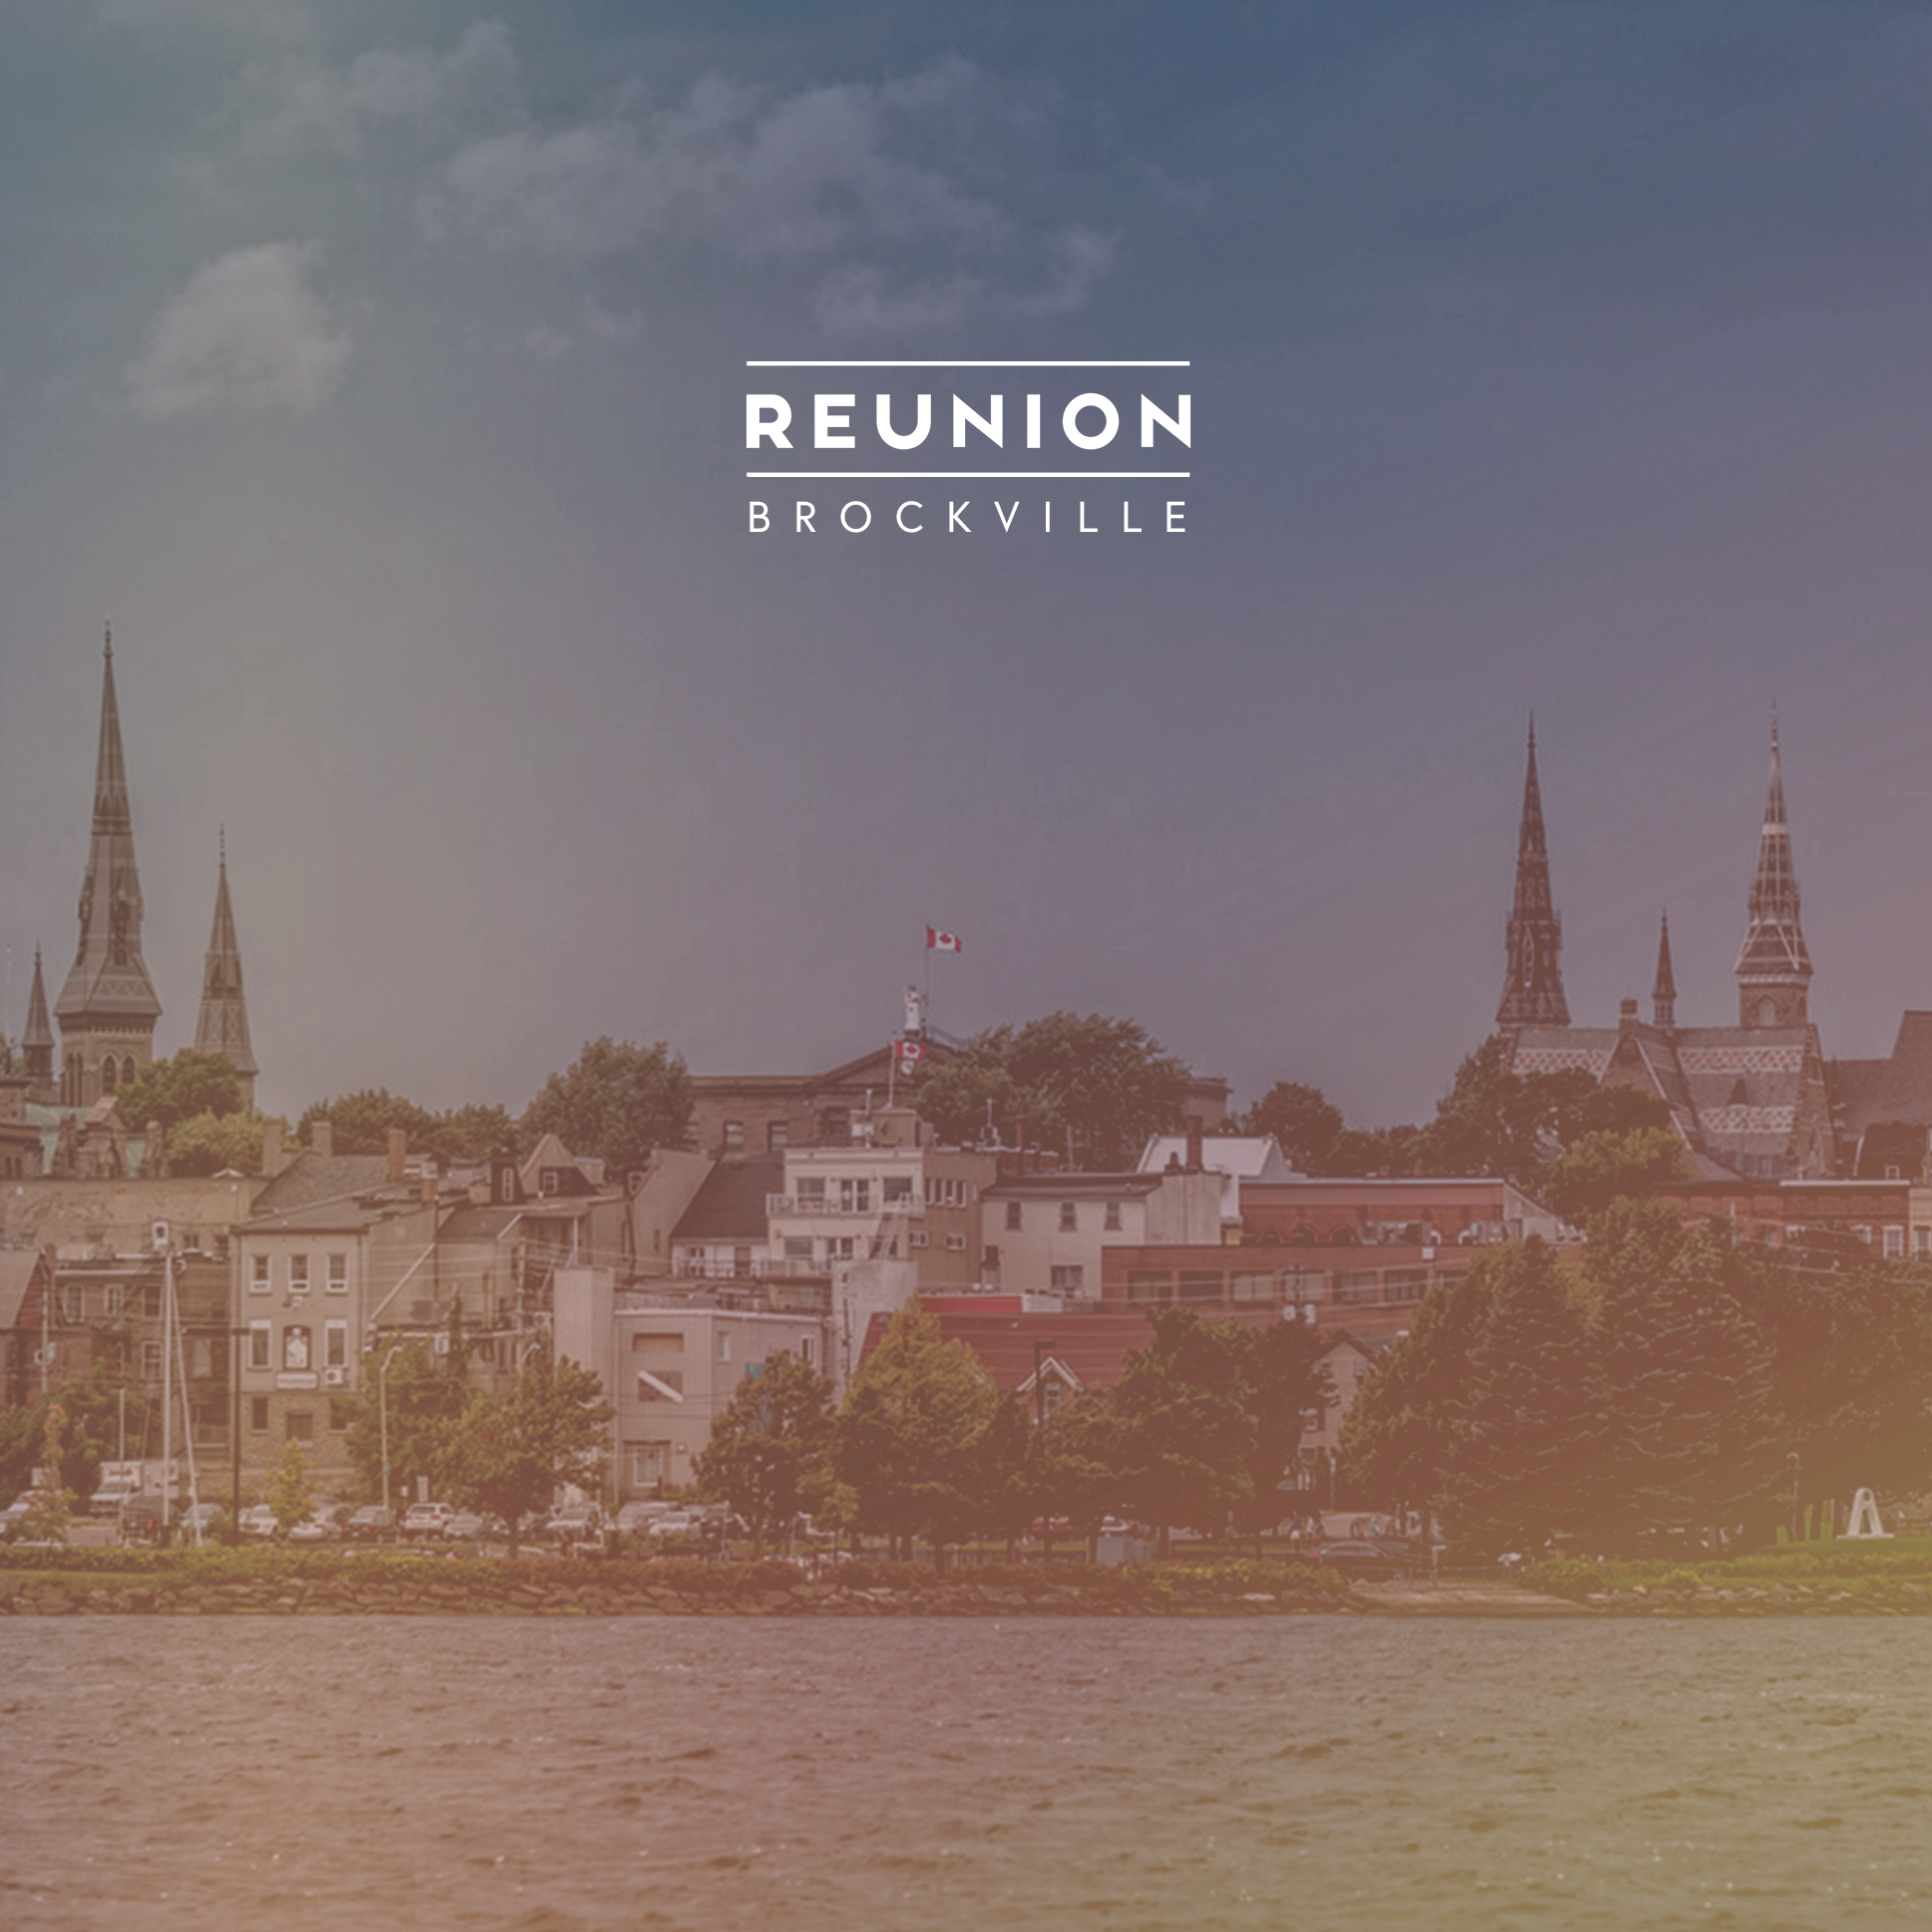 Reunion Brockville.png